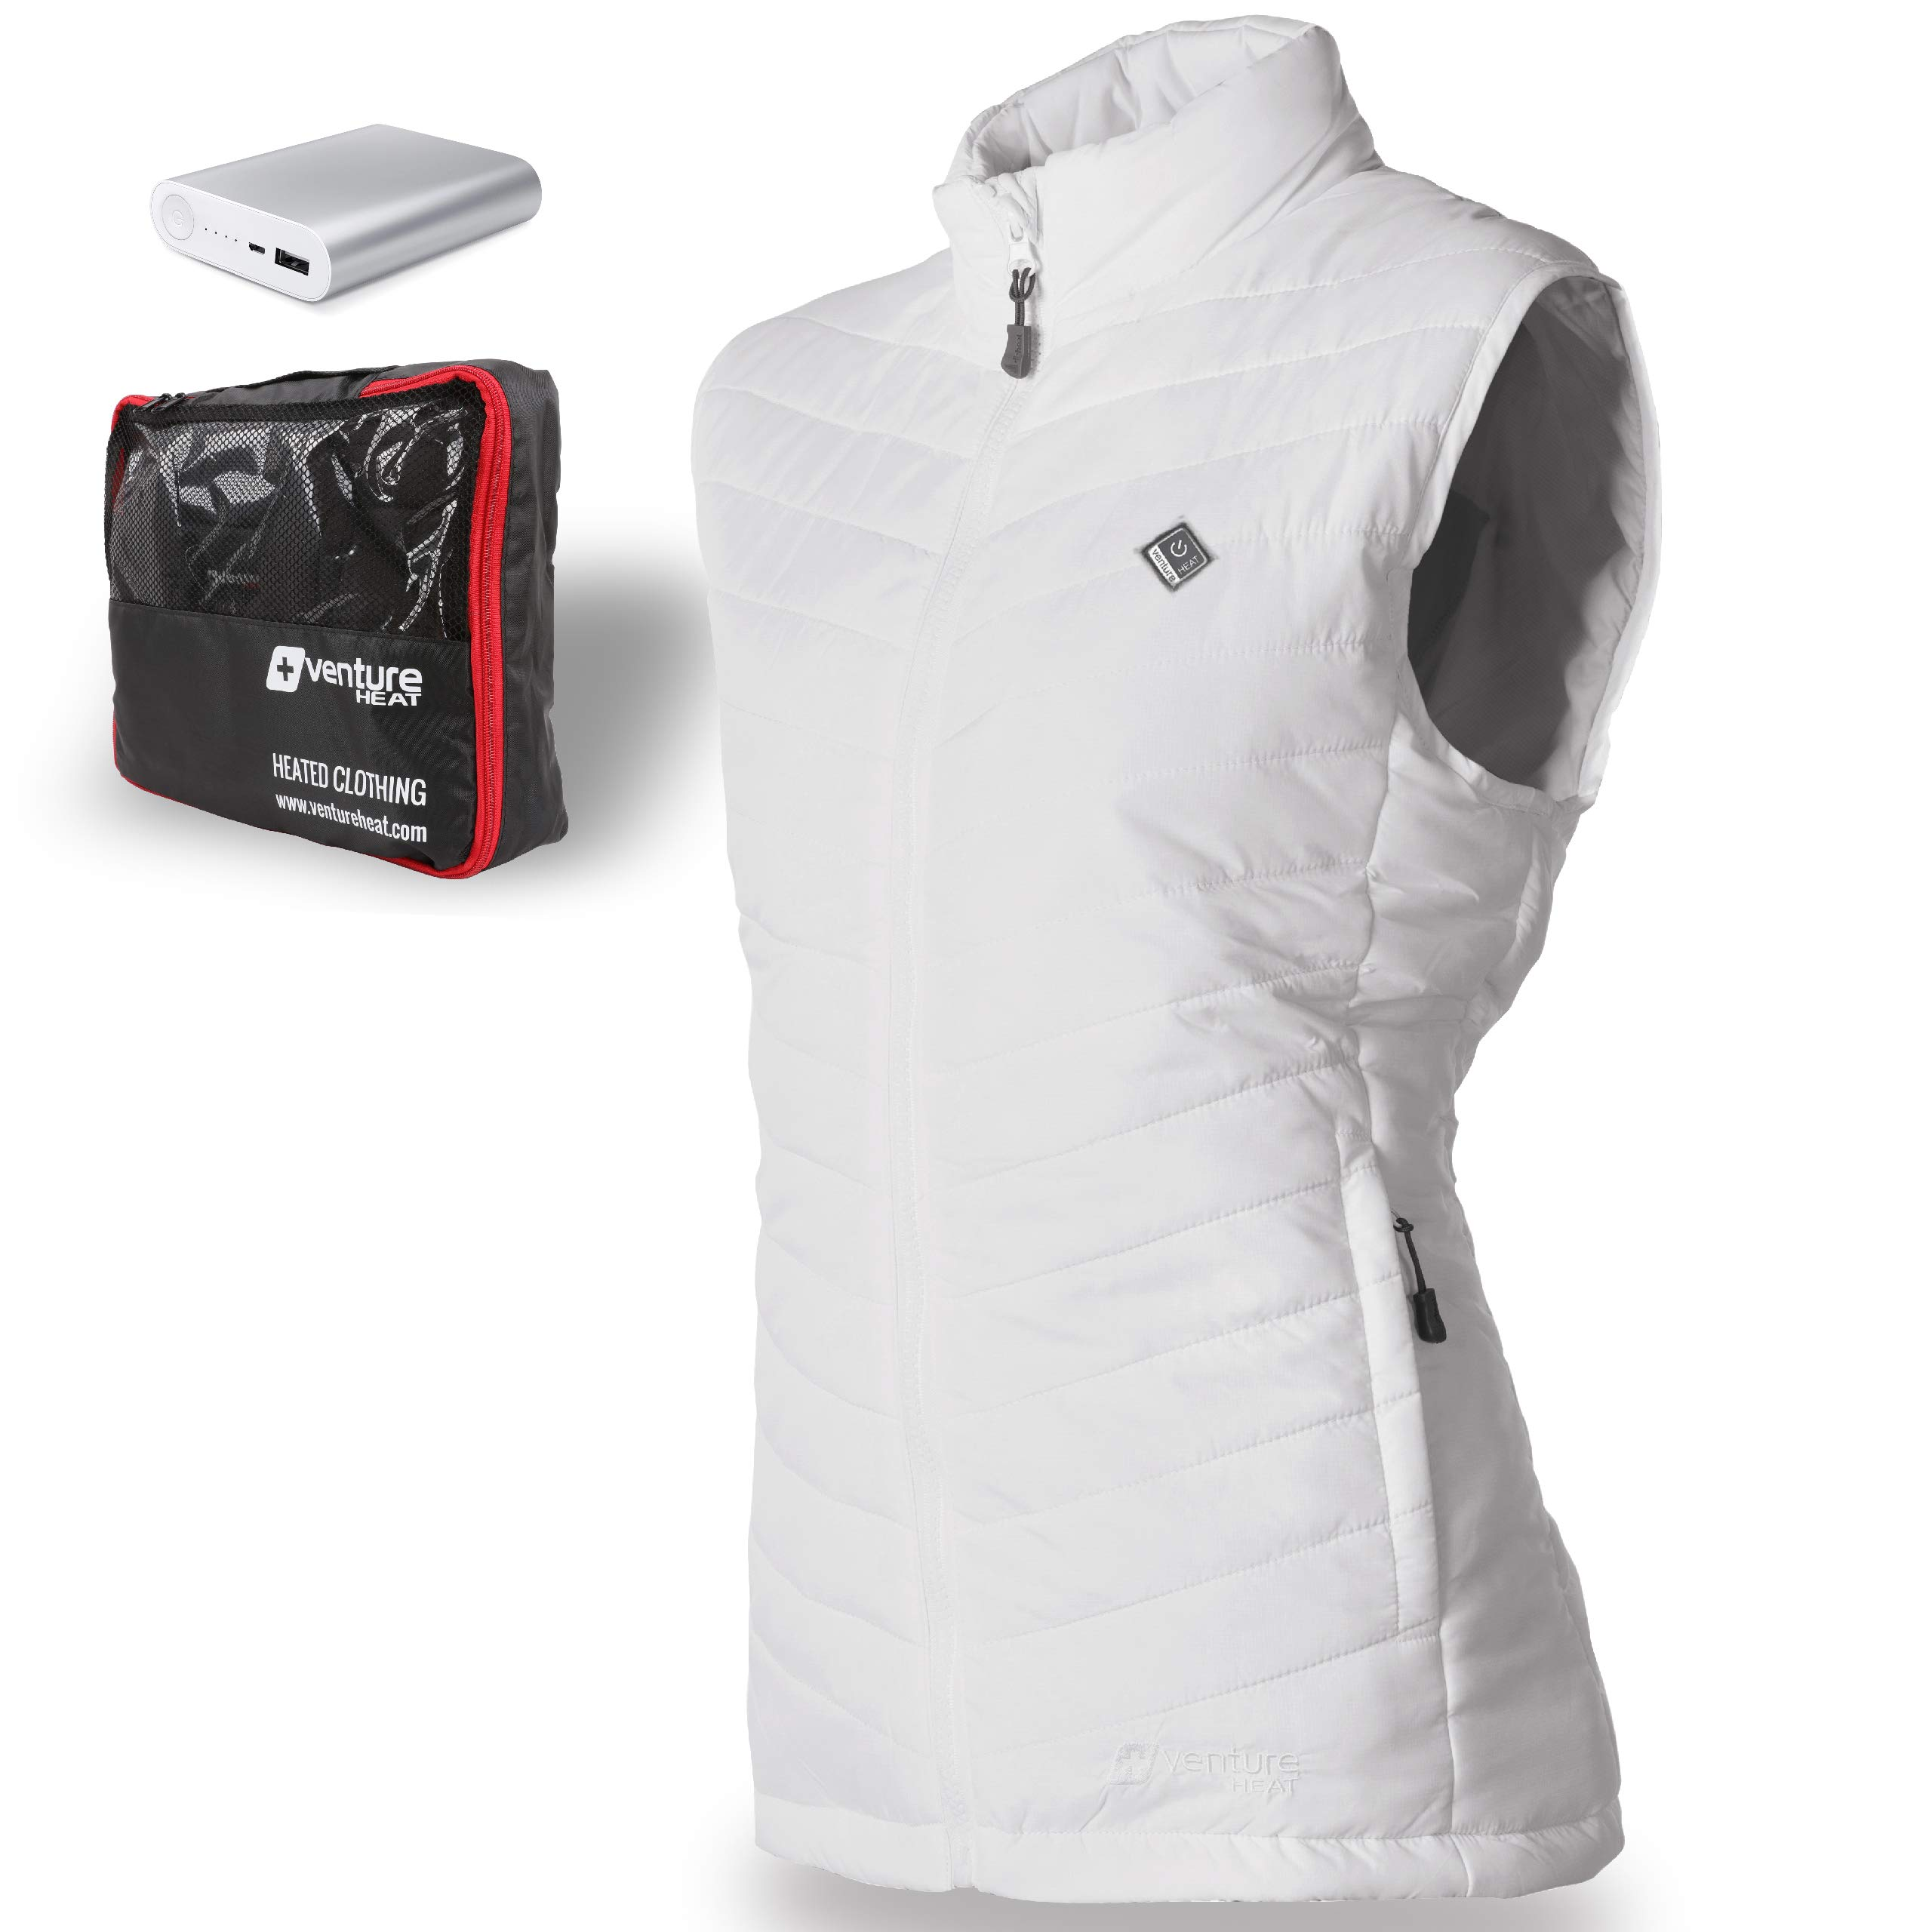 Venture Heat Women's Heated Vest with Battery 12 Hour - The Roam Puffer Heated Vest for Women, USB Powered (L, White) by Venture Heat